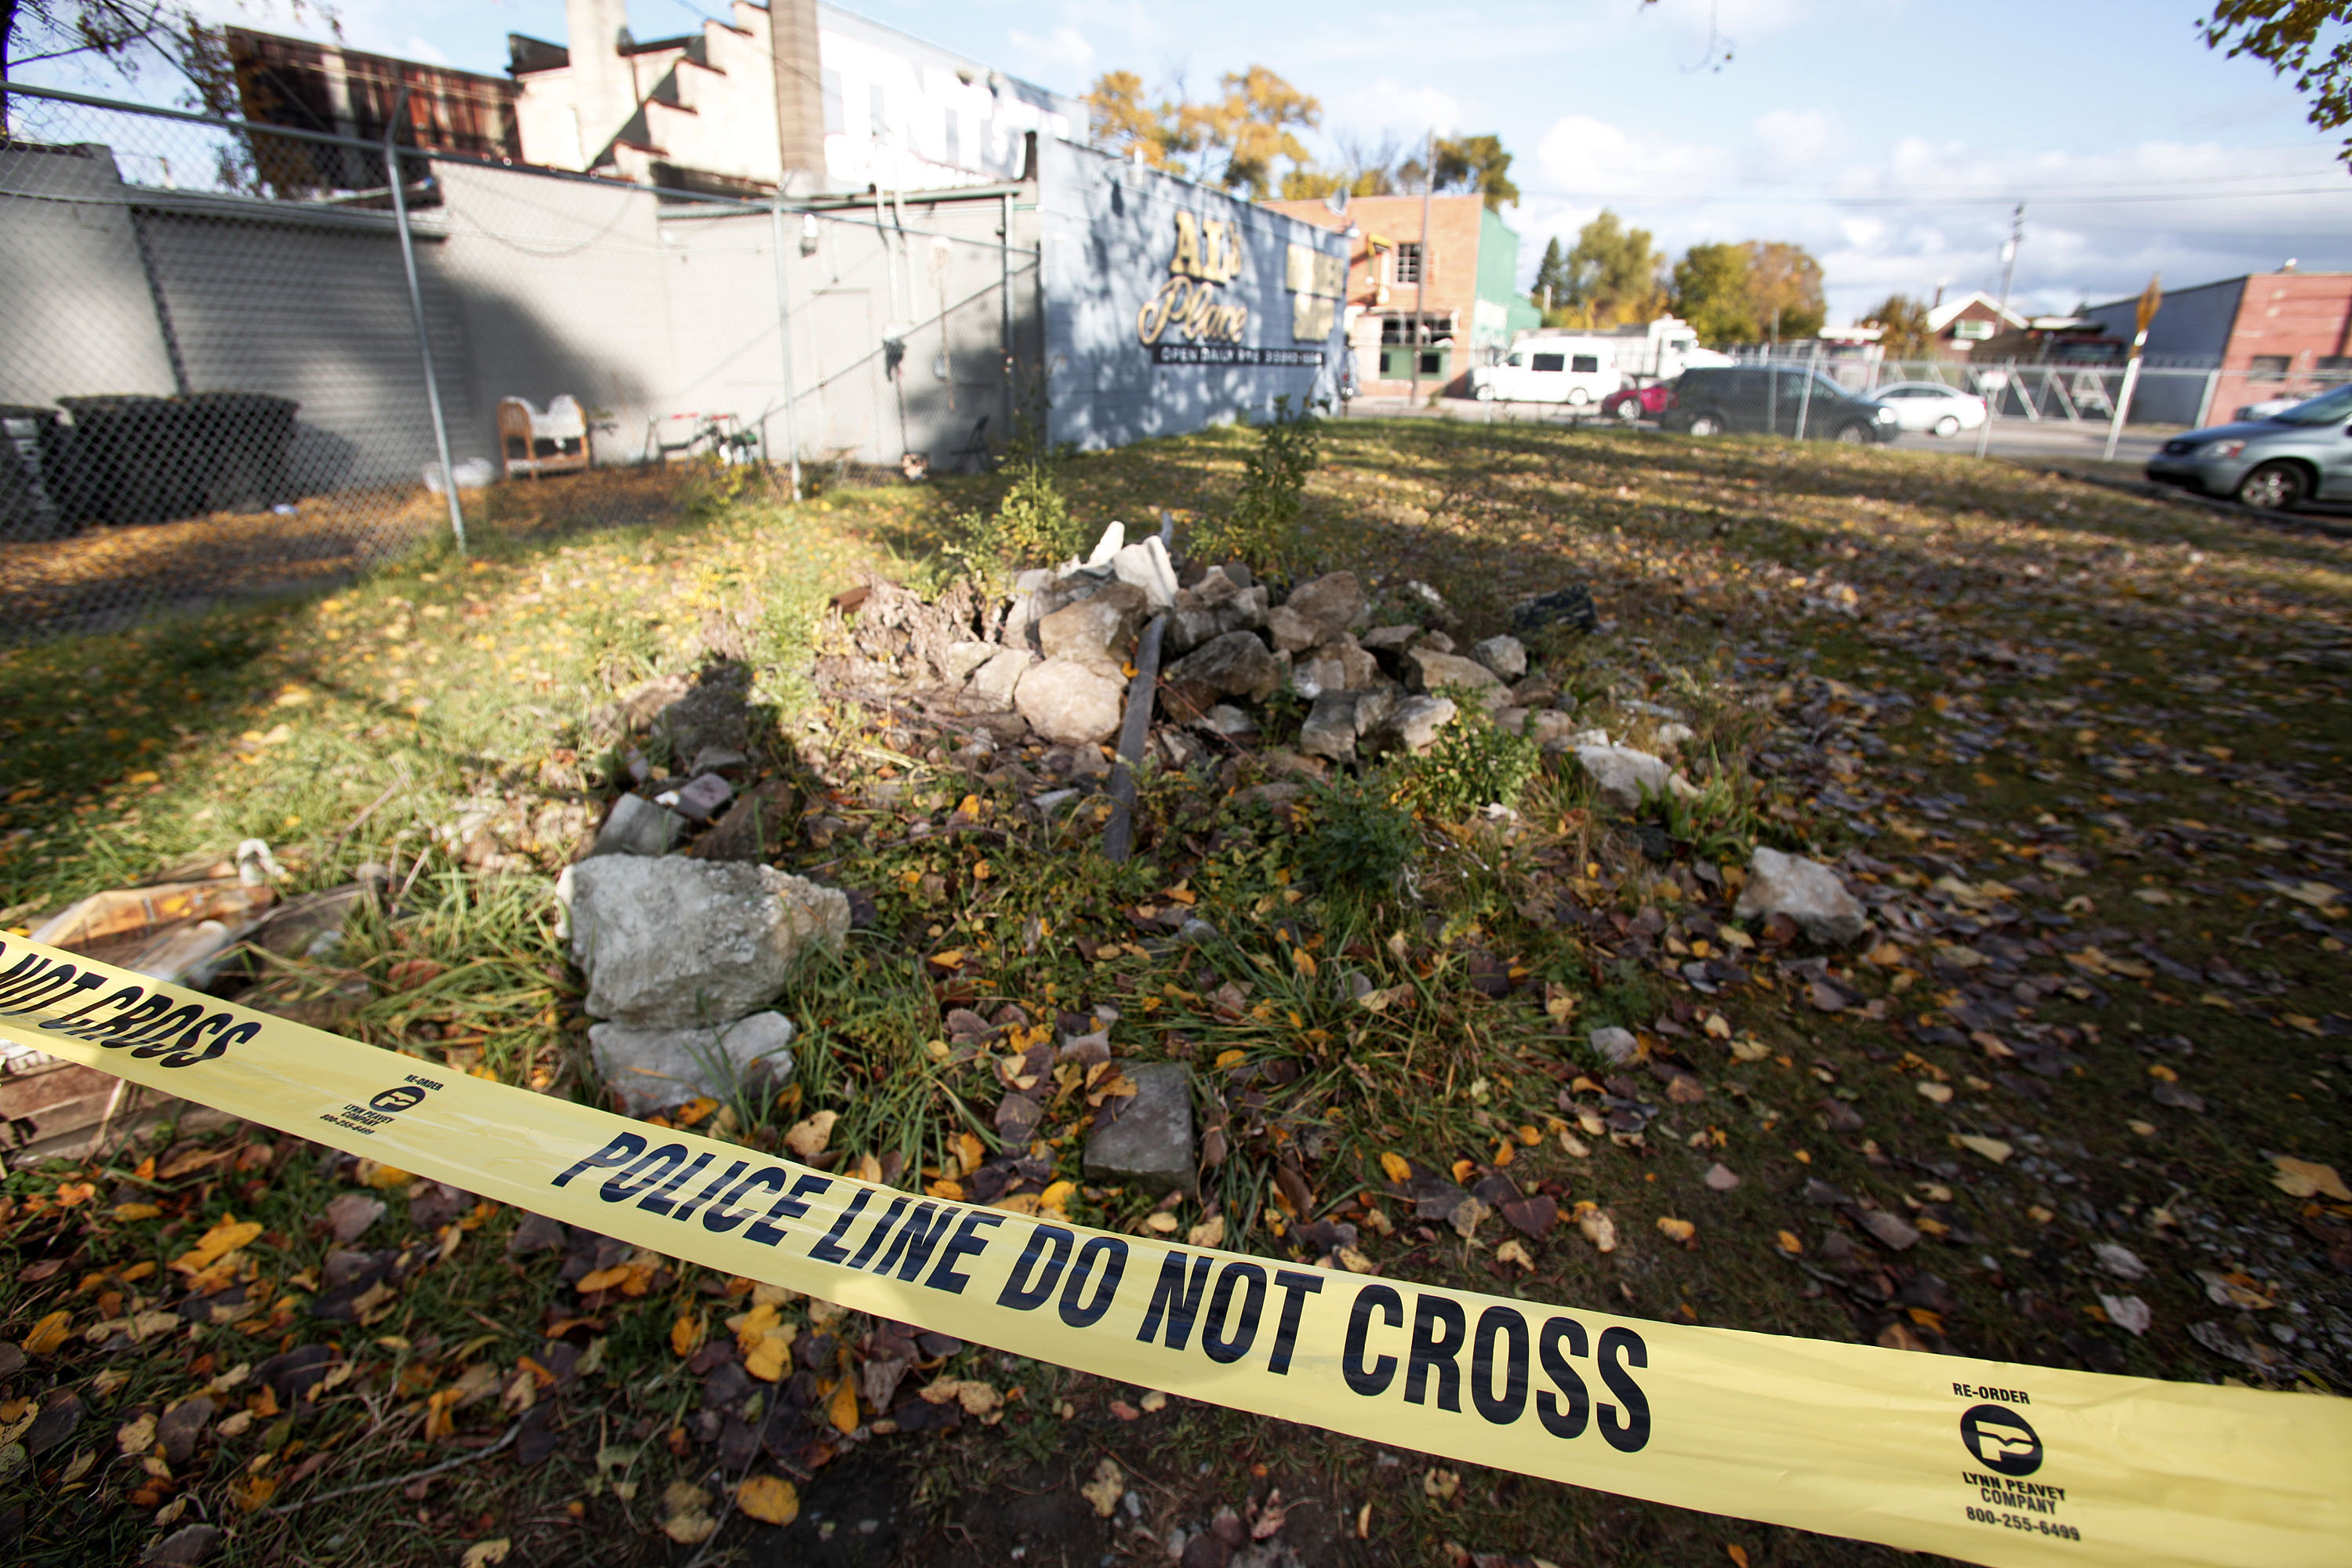 Three Killed, Multiple Wounded In Shooting In Detroit